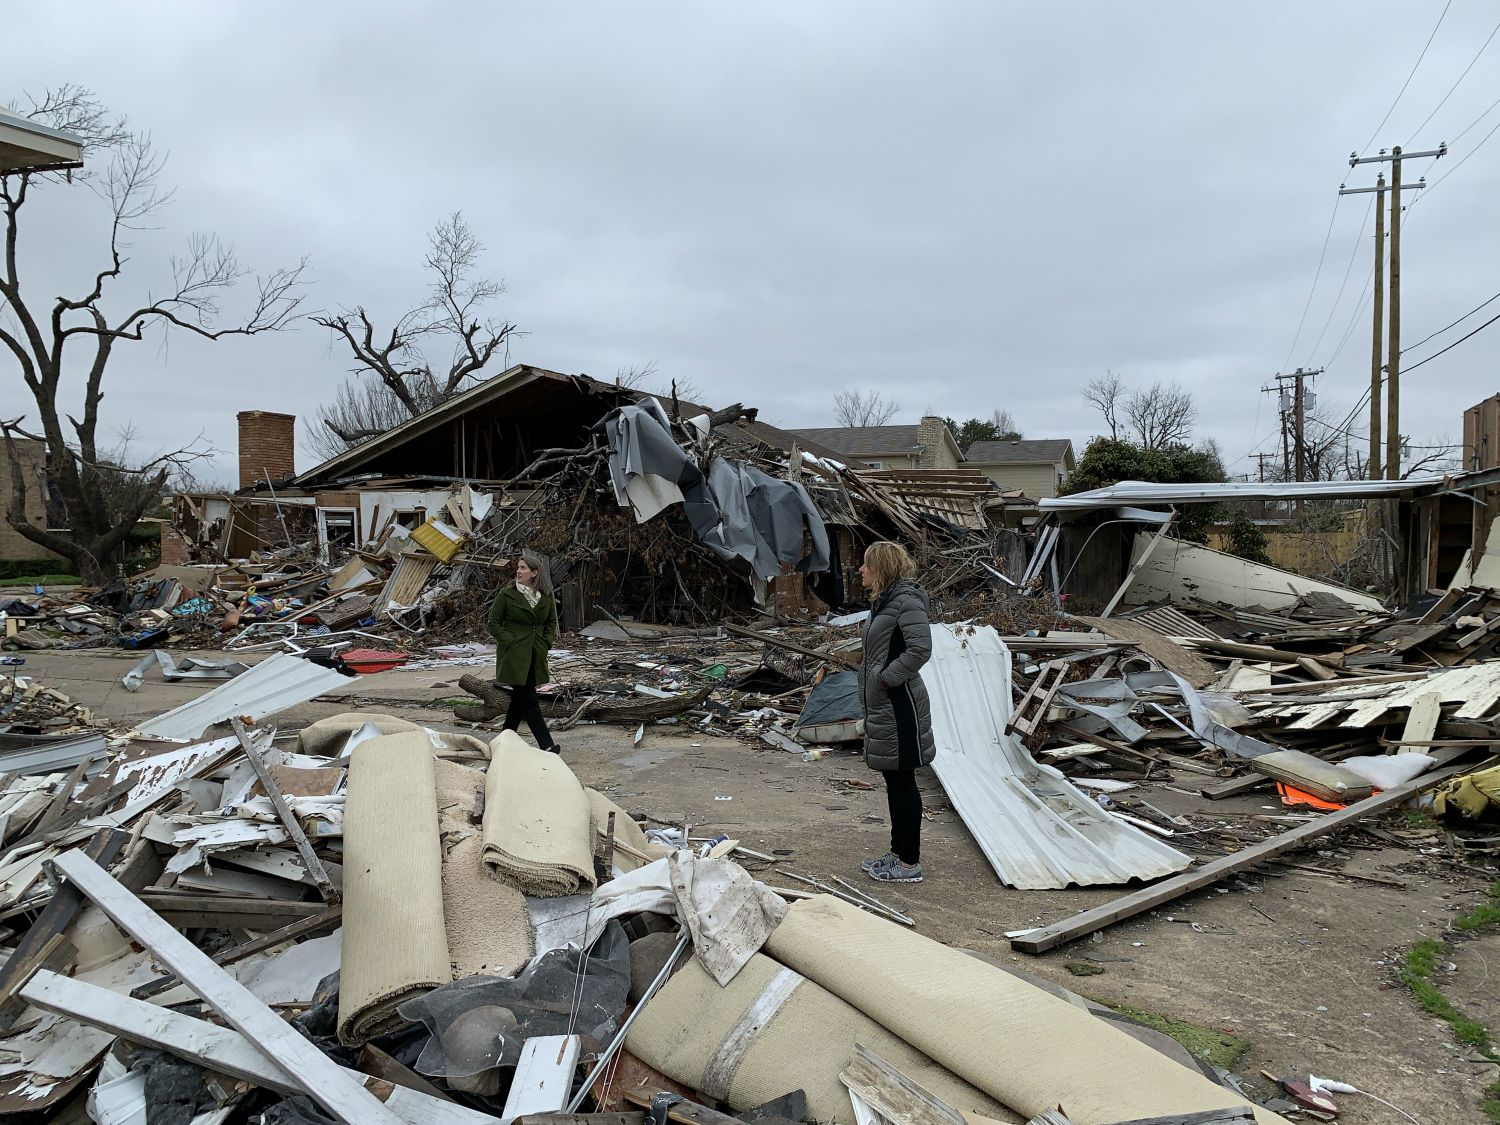 Council member Jennifer Staubach Gates, right, and her council liaison Sarah Evans tour tornado damage on Jan. 29, 2020, behind the Marsh Lane Plaza shopping center in northwest Dallas.